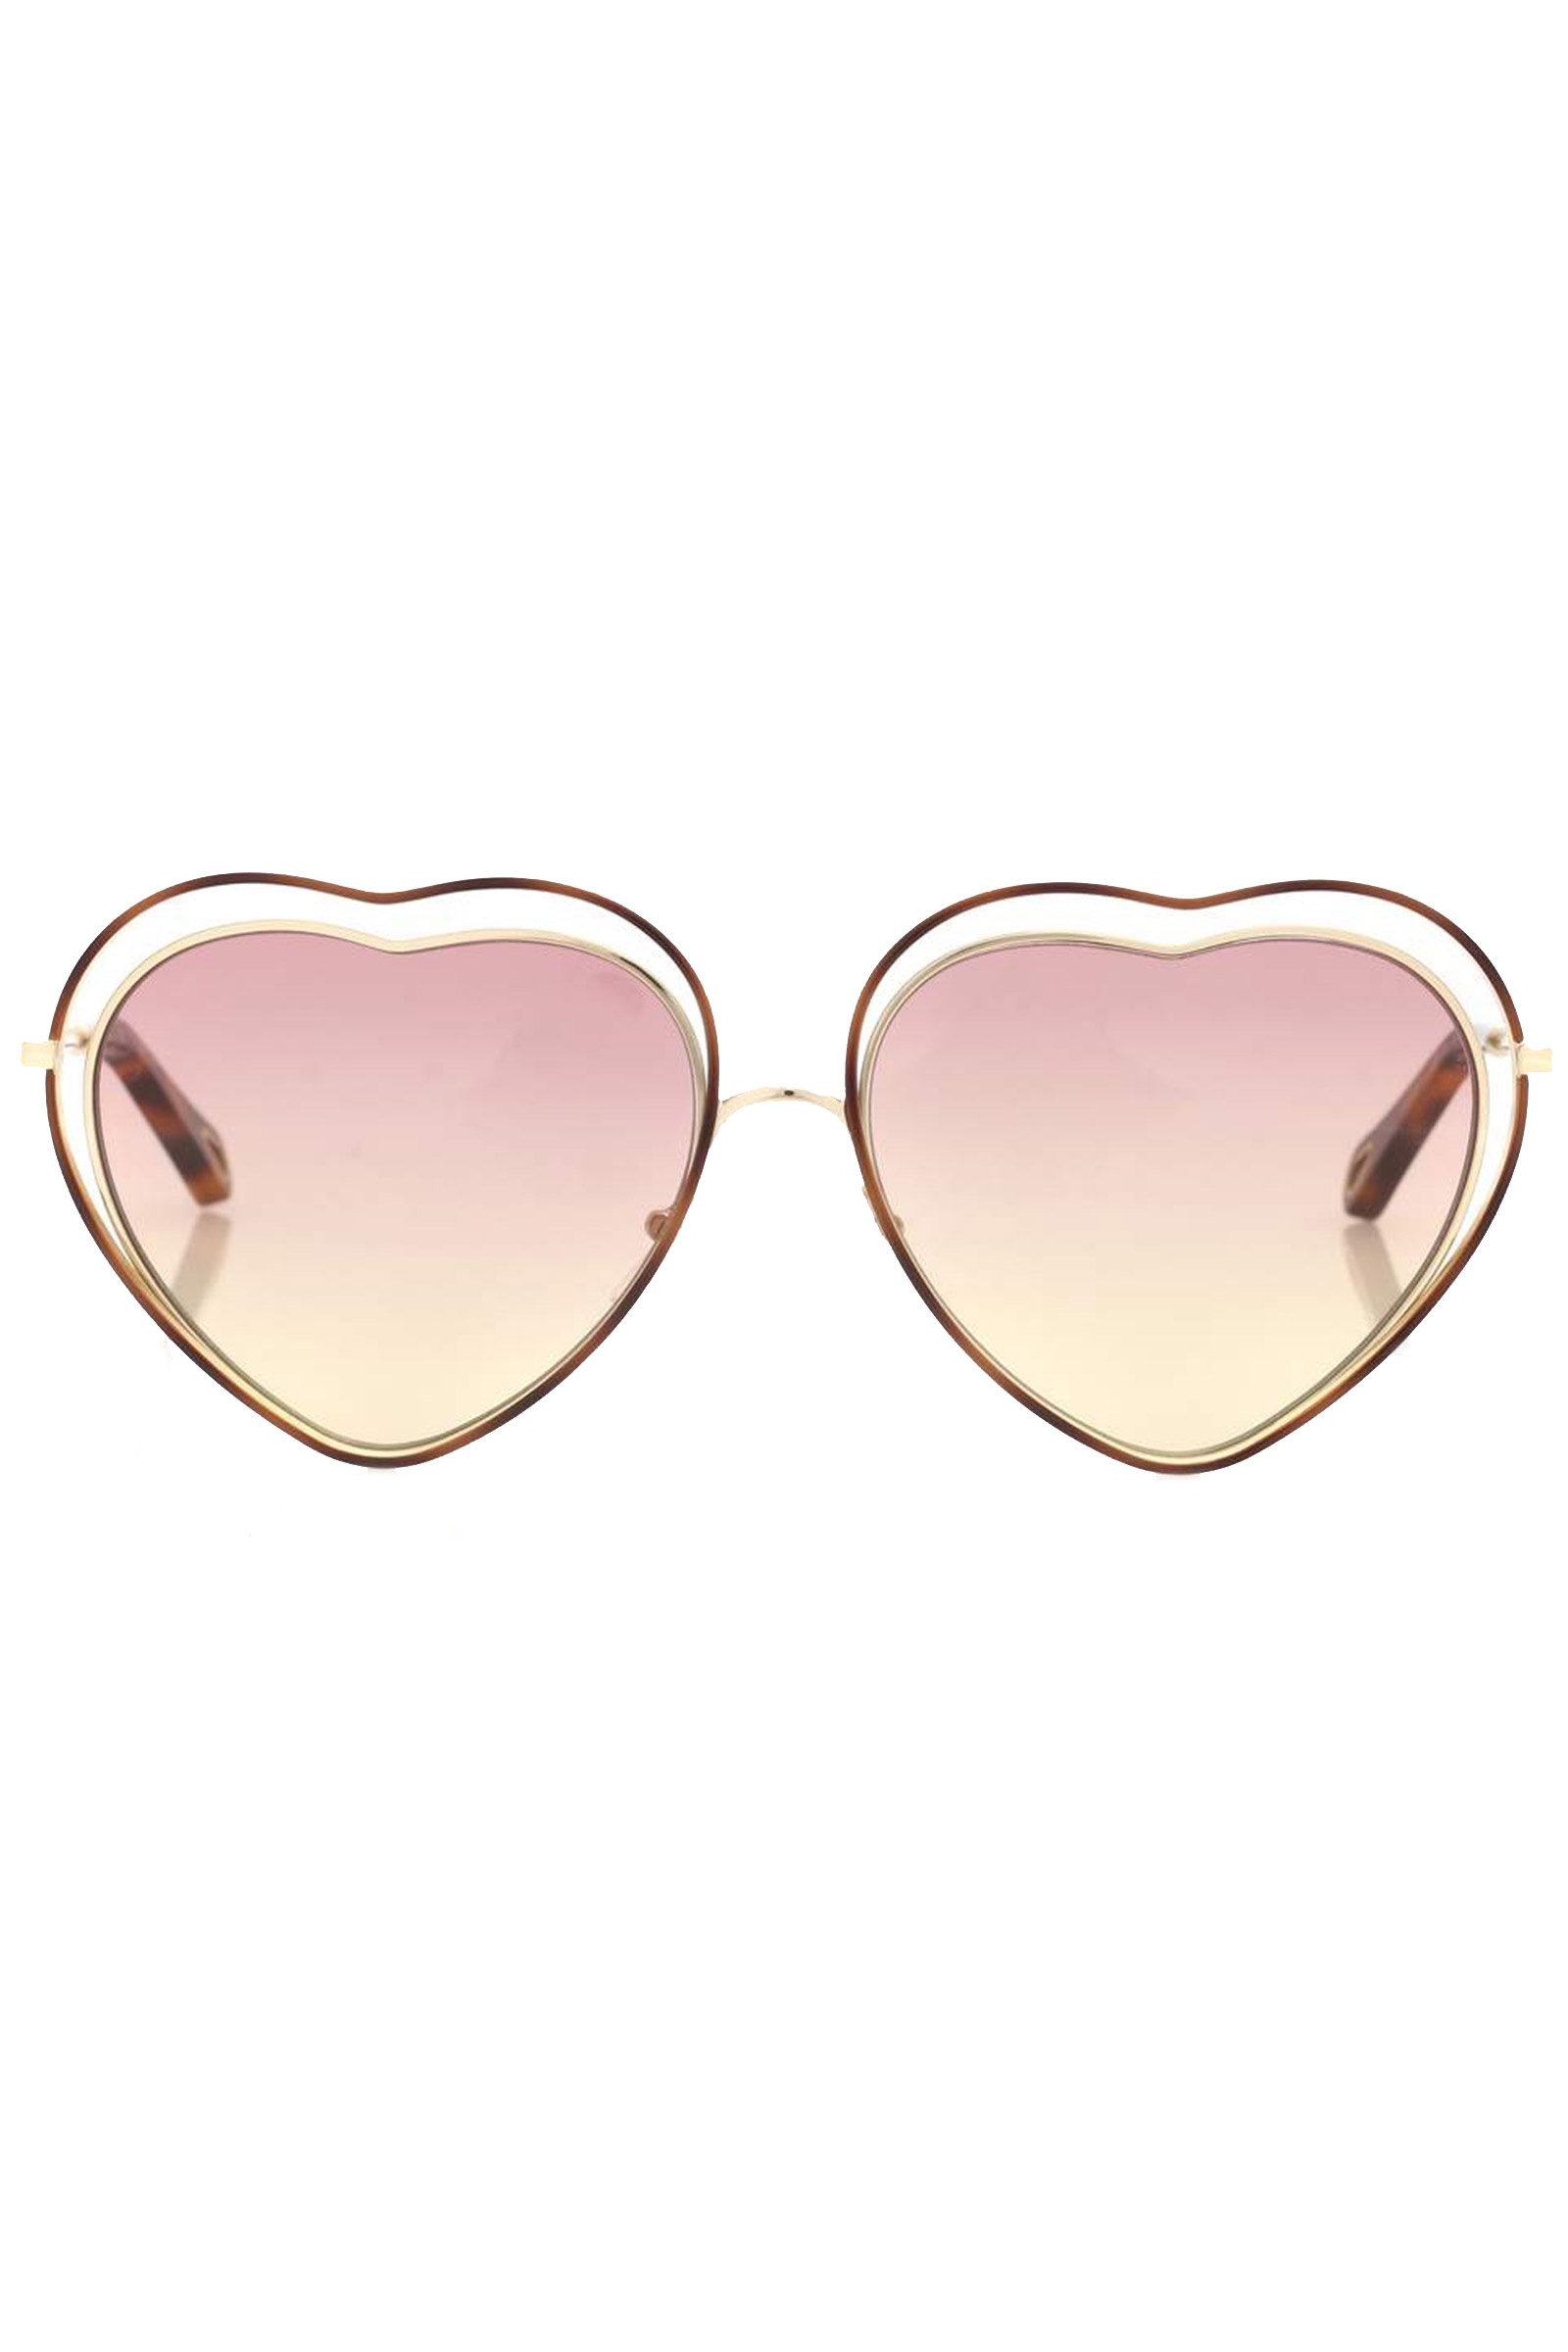 Click to Buy Chloé Heart Sunglasses